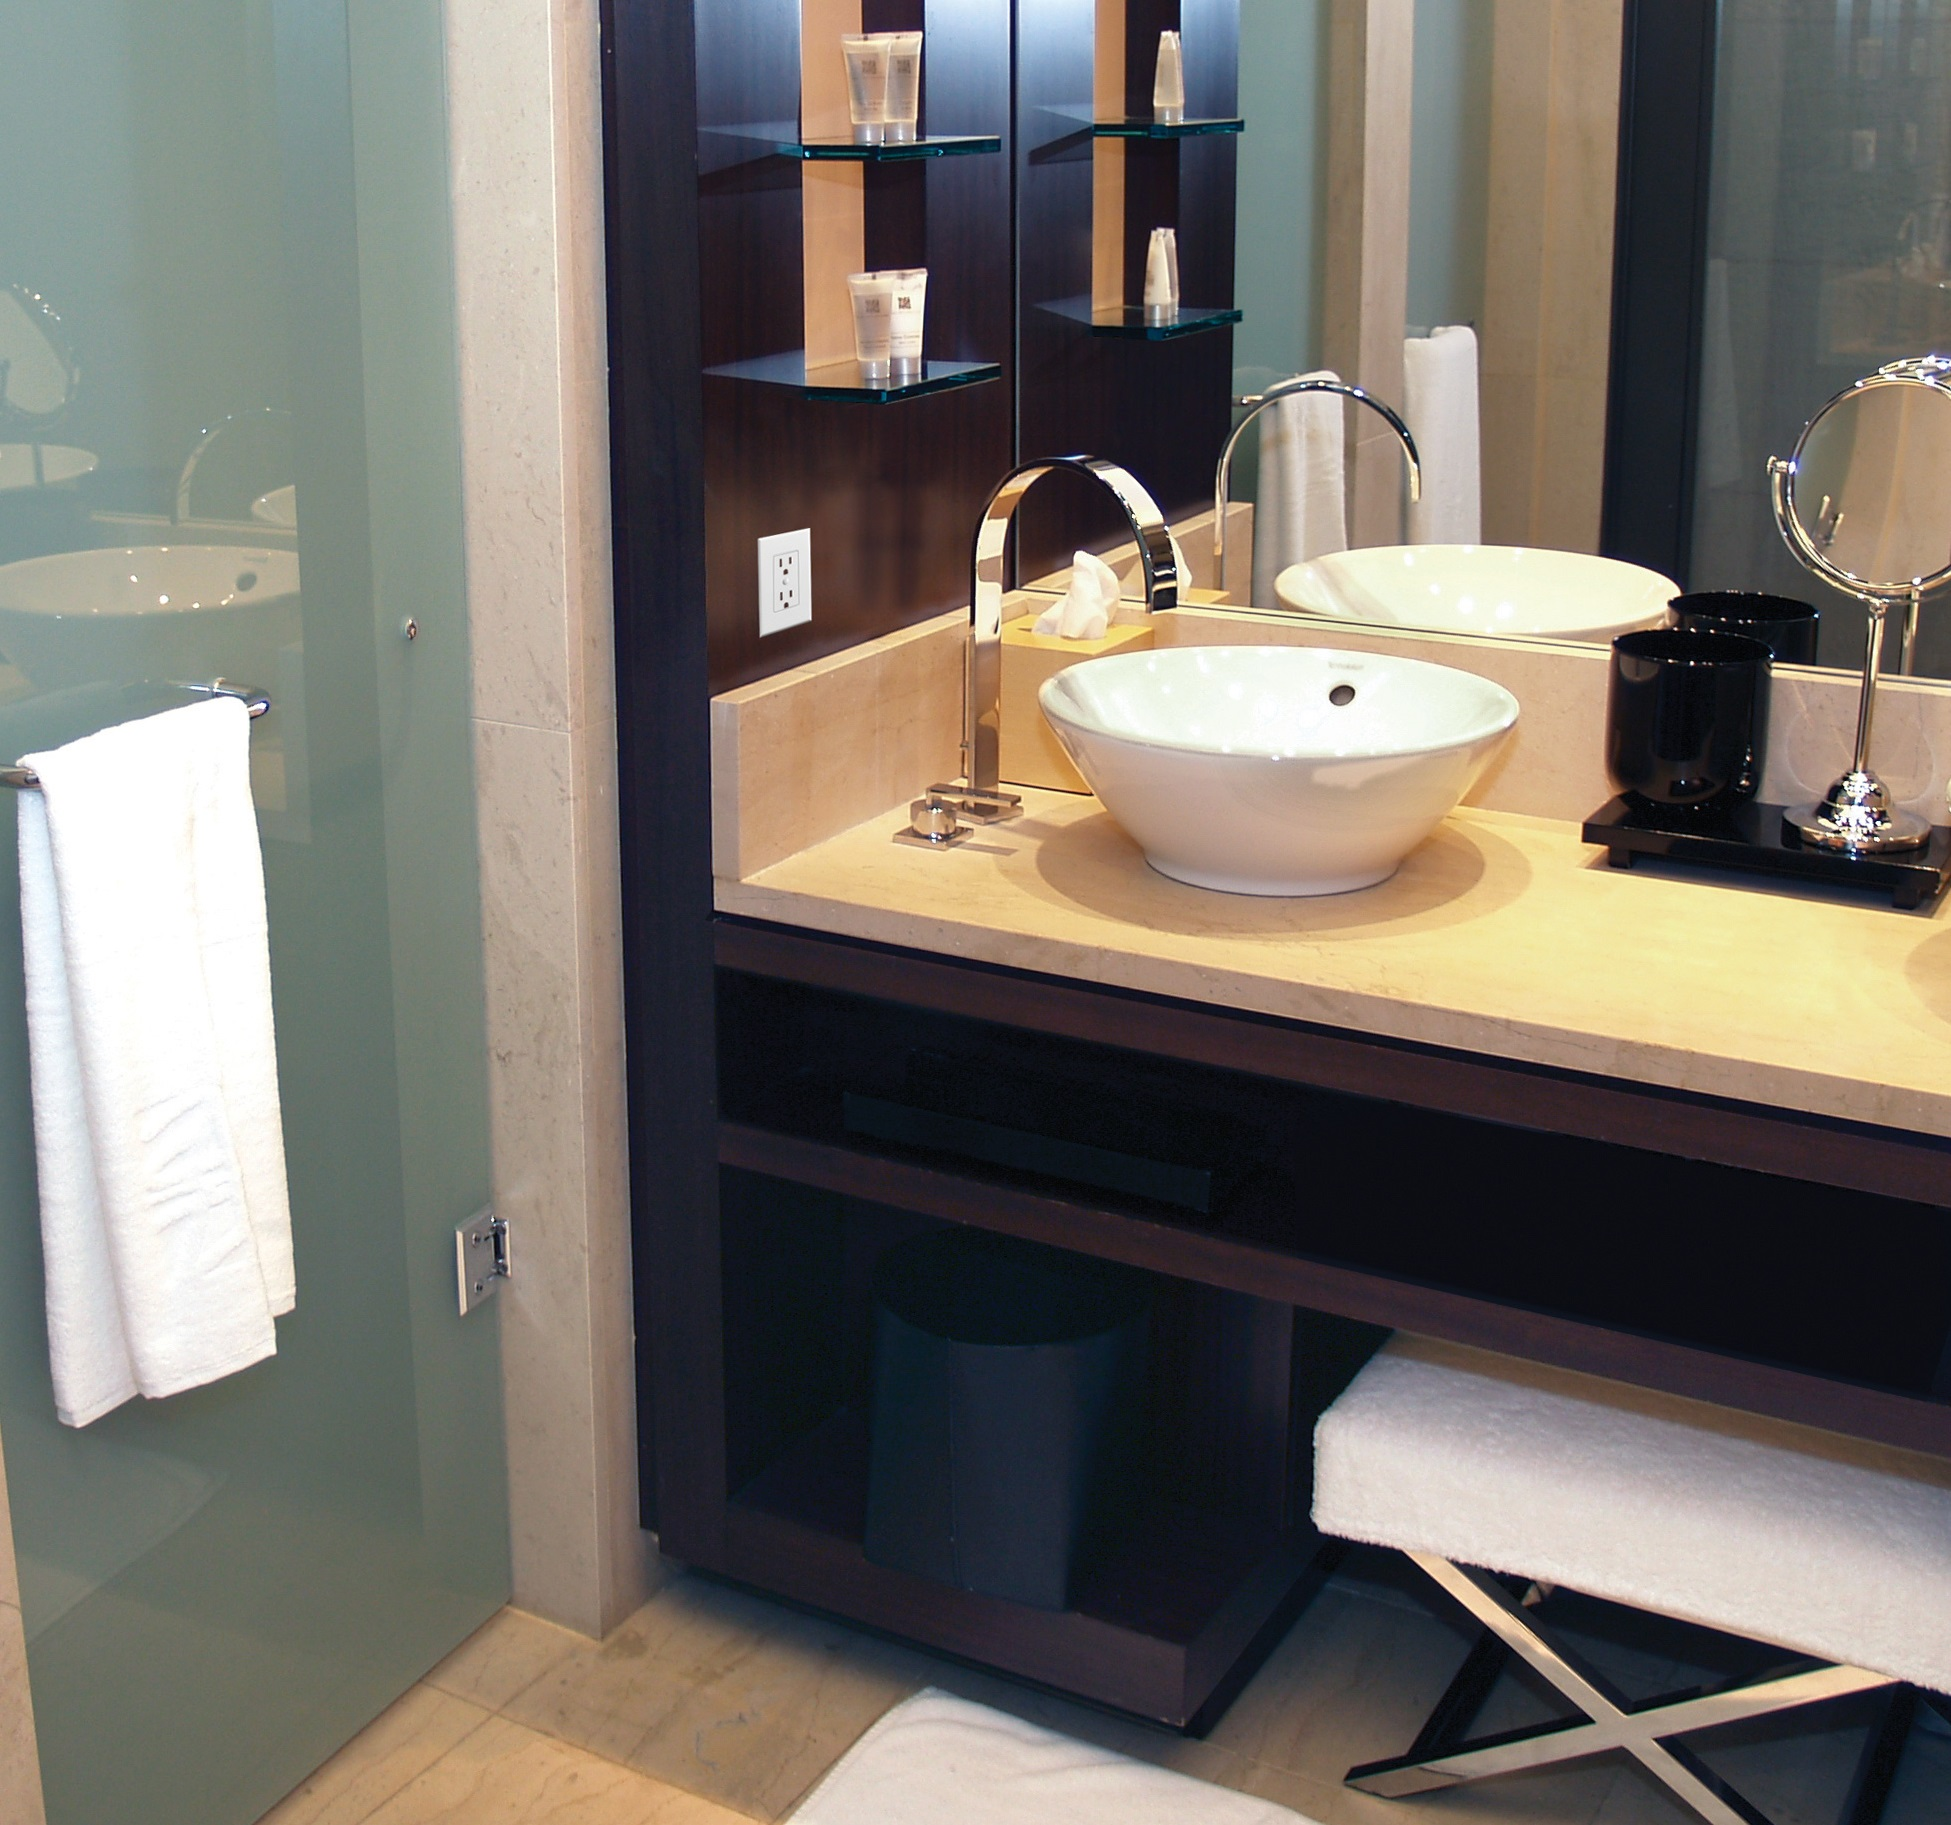 Condo-Bathroom-Crop-CMYK_1.jpg